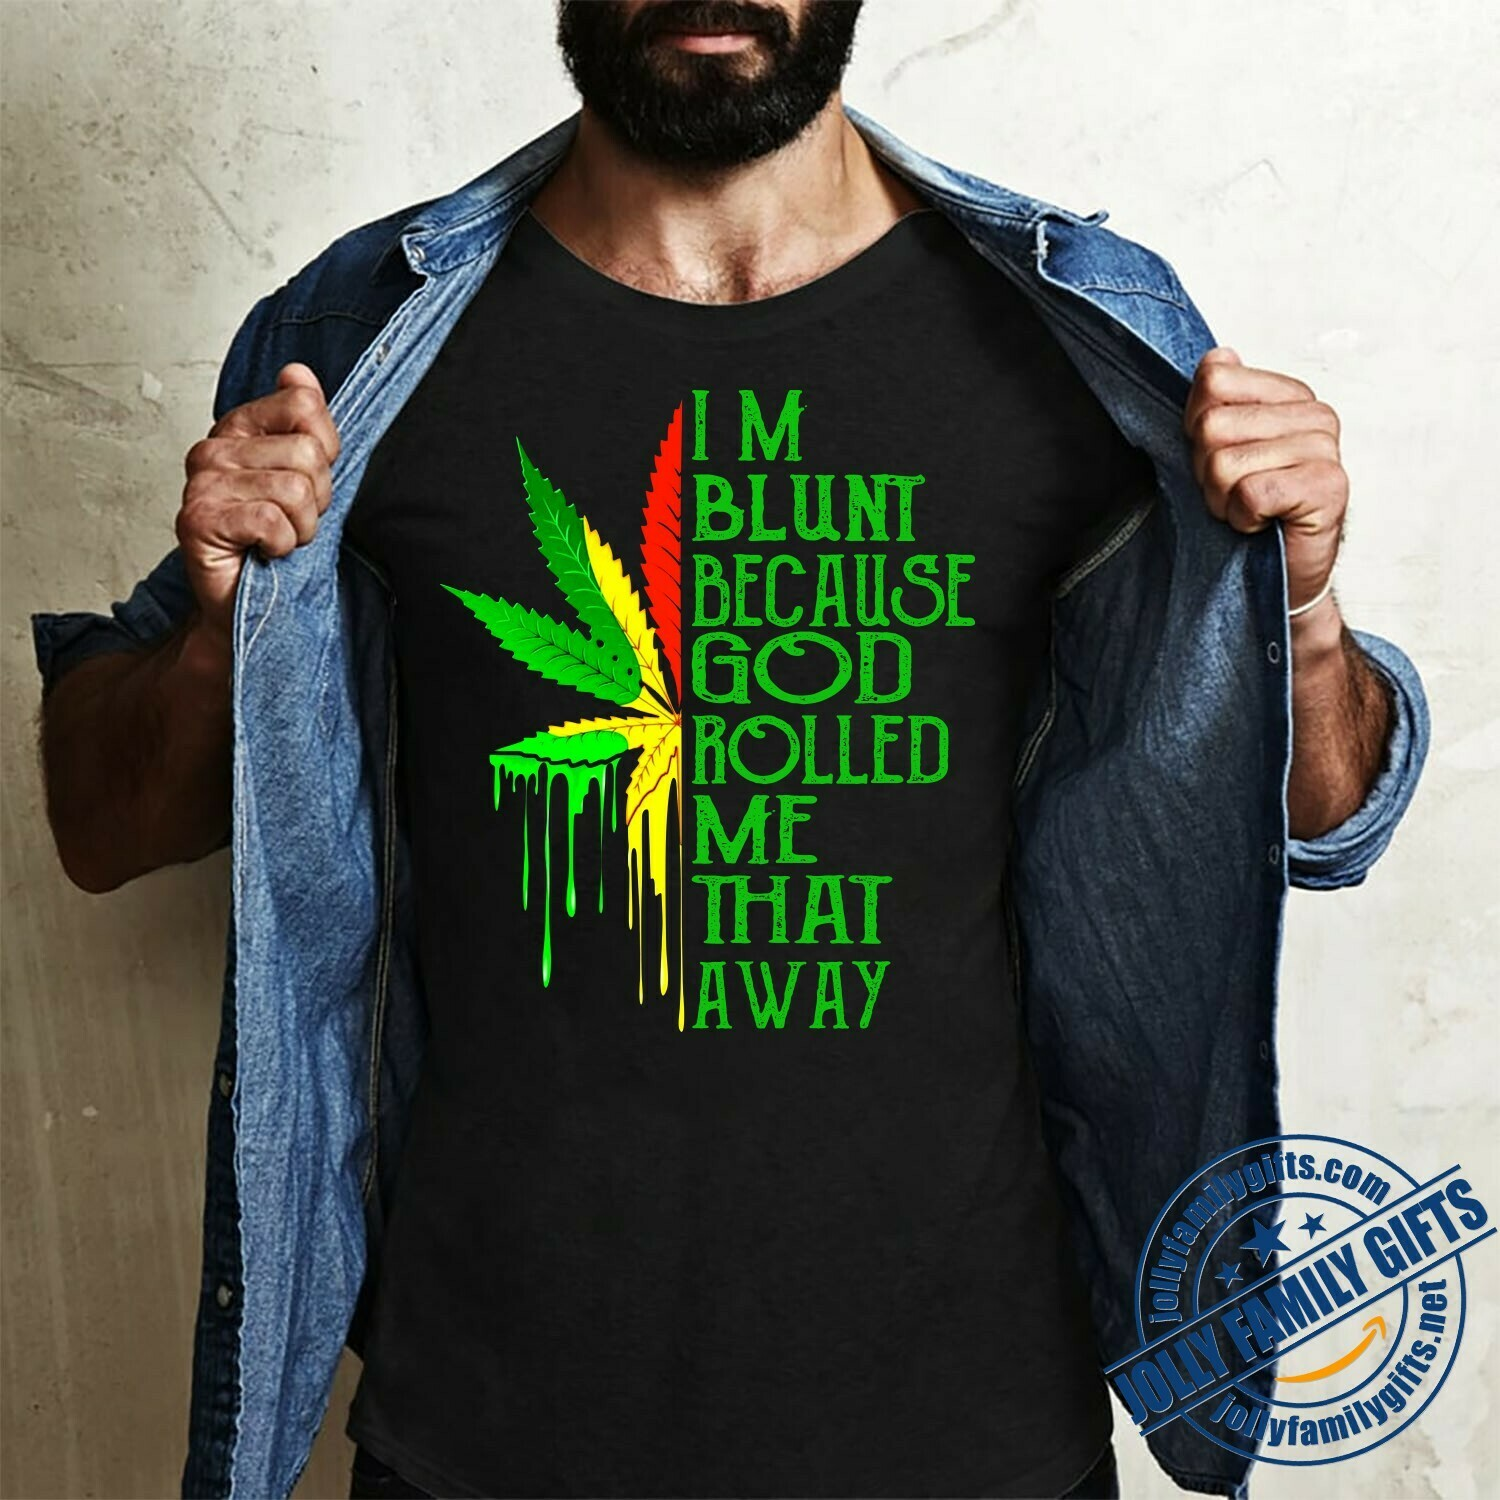 I'm Blunt Because God Rolled Me That Way Marijuana Weed Art for Her Him Unisex T-Shirt Hoodie Sweatshirt Sweater Plus Size for Ladies Women Men Kids Youth Gifts Tee Jolly Family Gifts